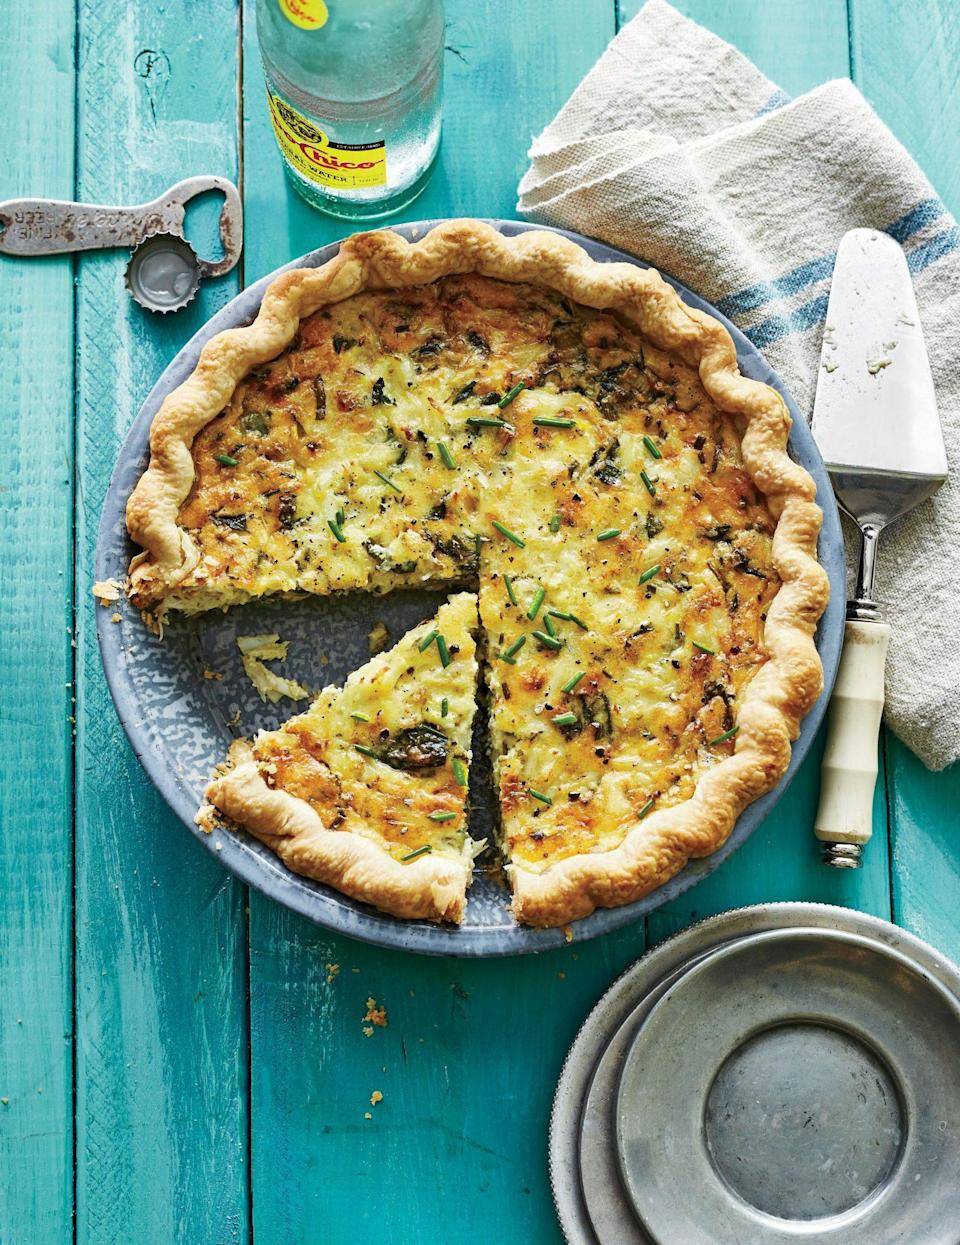 """<p><strong>Recipe:</strong> <a href=""""https://www.southernliving.com/recipes/crab-pie-recipe"""" rel=""""nofollow noopener"""" target=""""_blank"""" data-ylk=""""slk:Crab Pie"""" class=""""link rapid-noclick-resp"""">Crab Pie</a></p> <p>Consider Crab Pie to be the richer, creamier cousin to your standard quiche. Your guests will be wowed and you'll be thankful that you only had to make one dish for breakfast!</p>"""